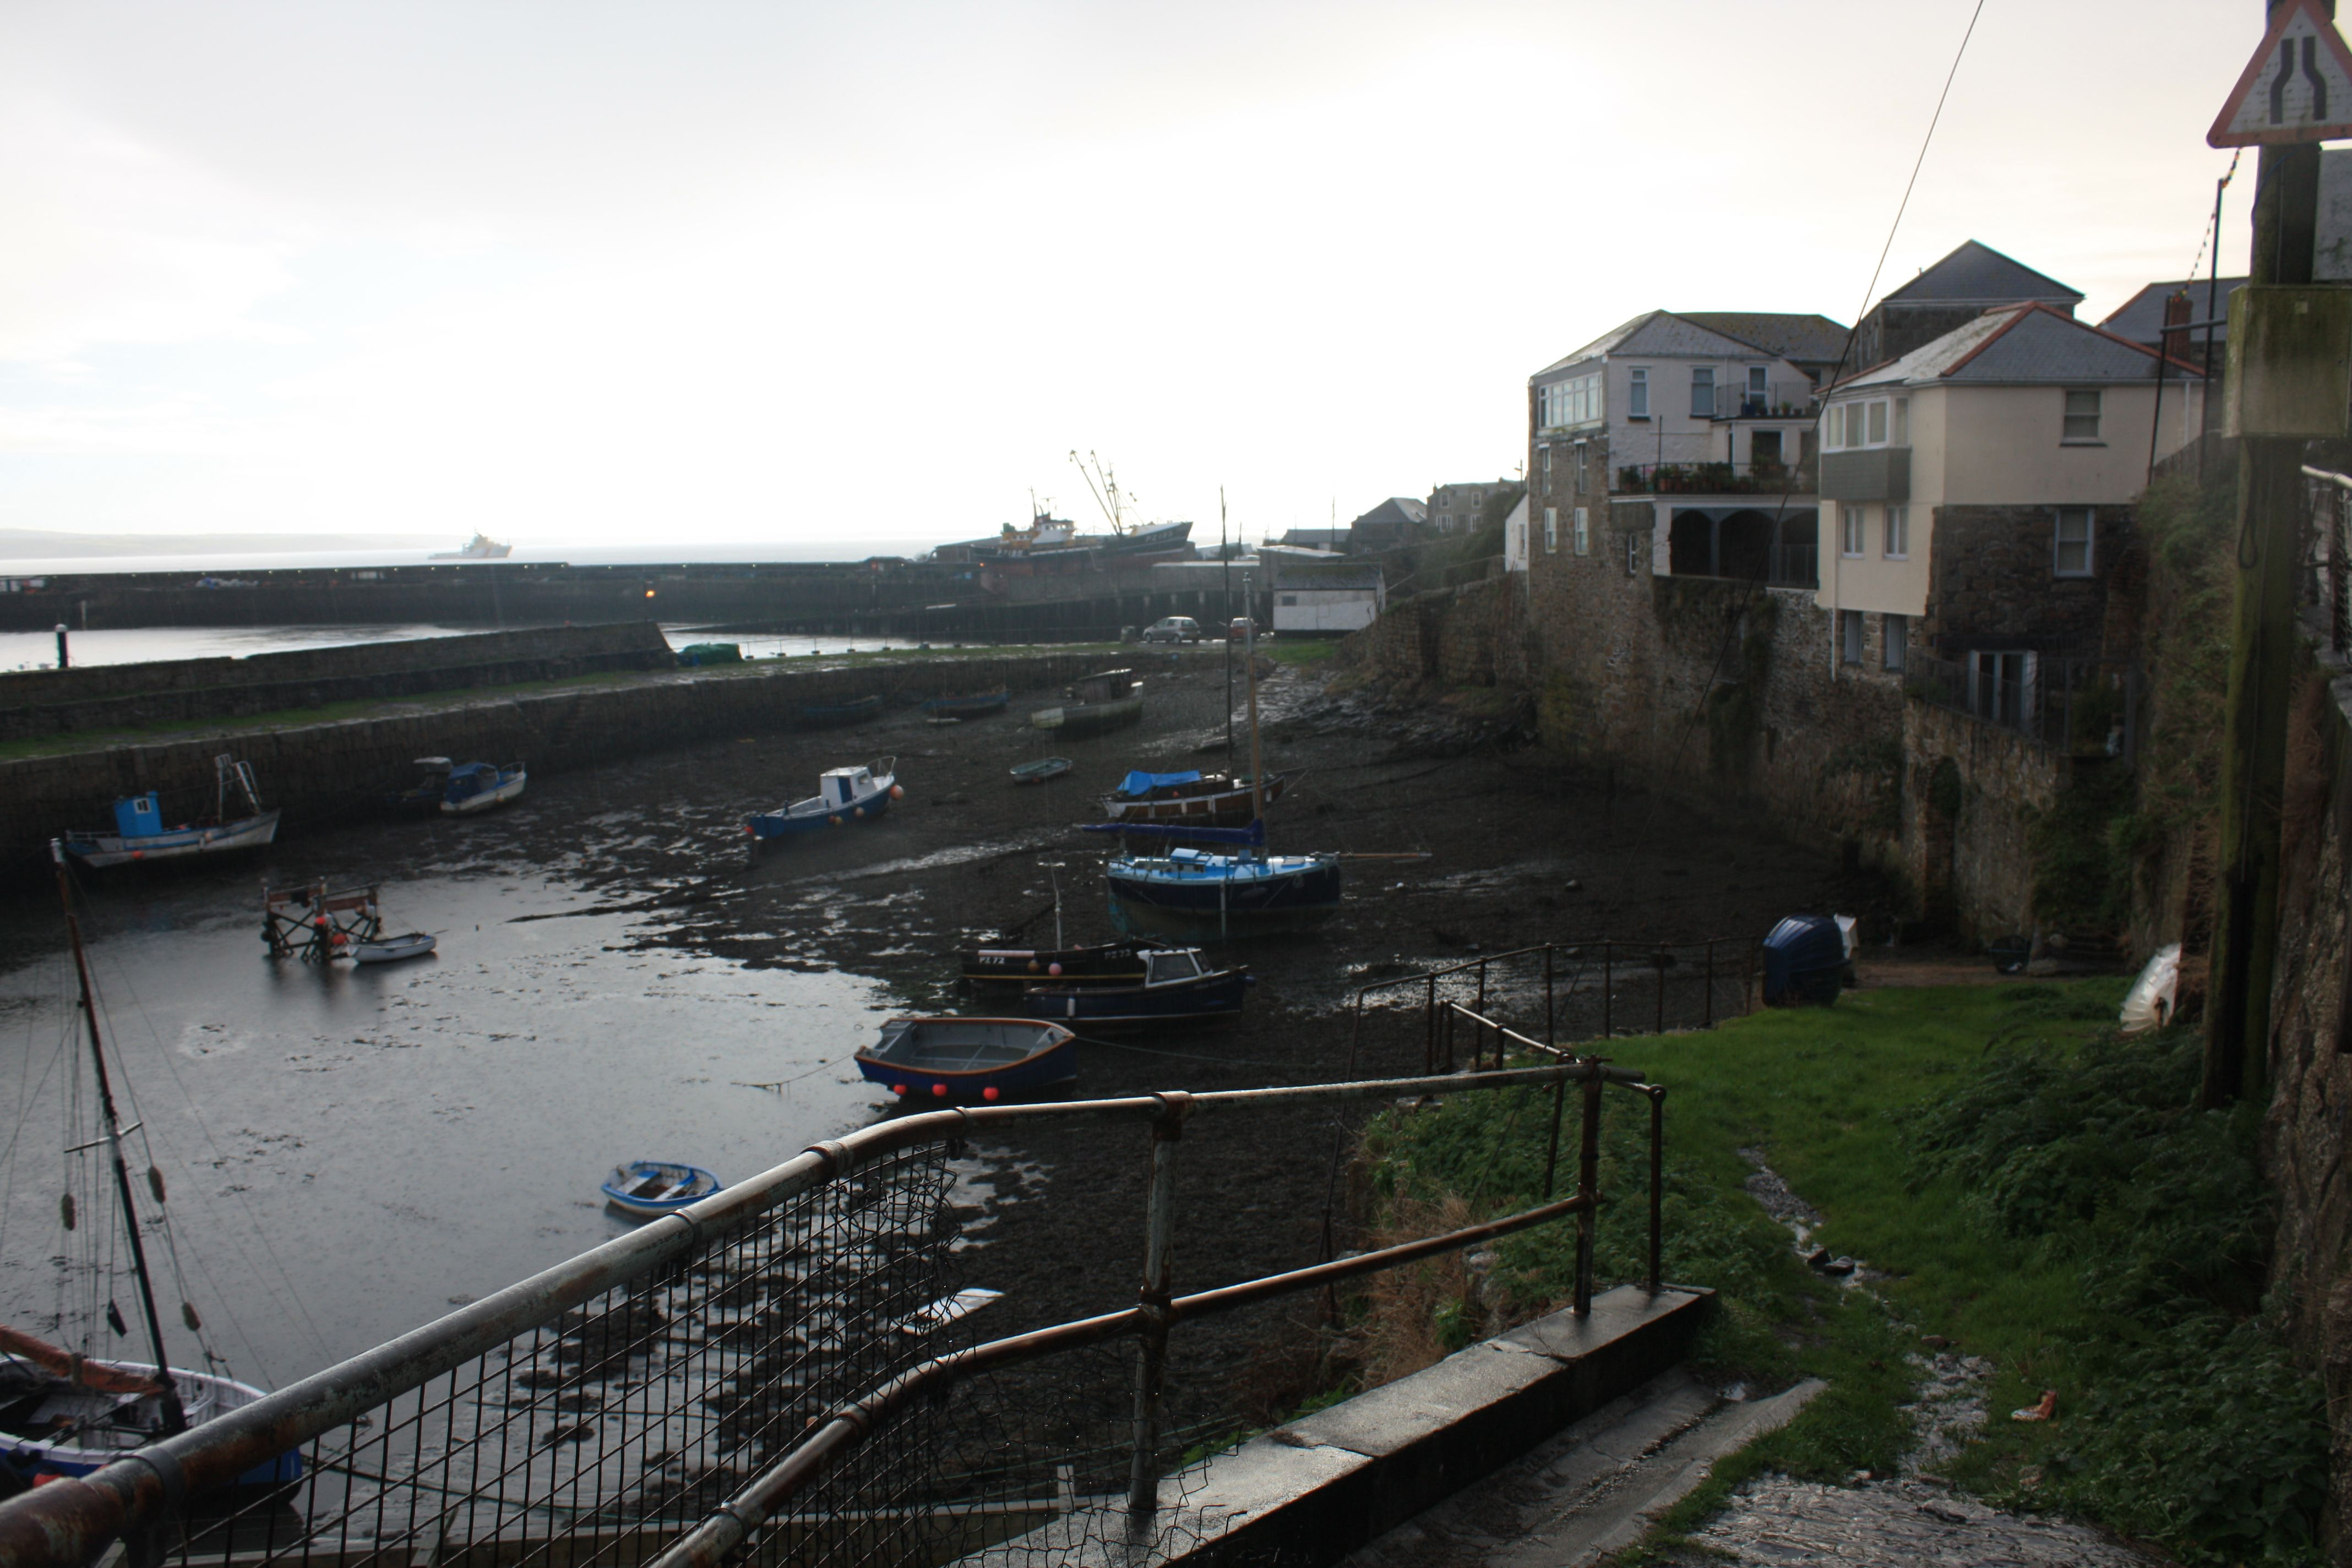 Newlyn Harbour Cornwall, Filmlocation Classic Doctor Who The Smuggler Broadcast from 10.09.1966 to 01.10.1966